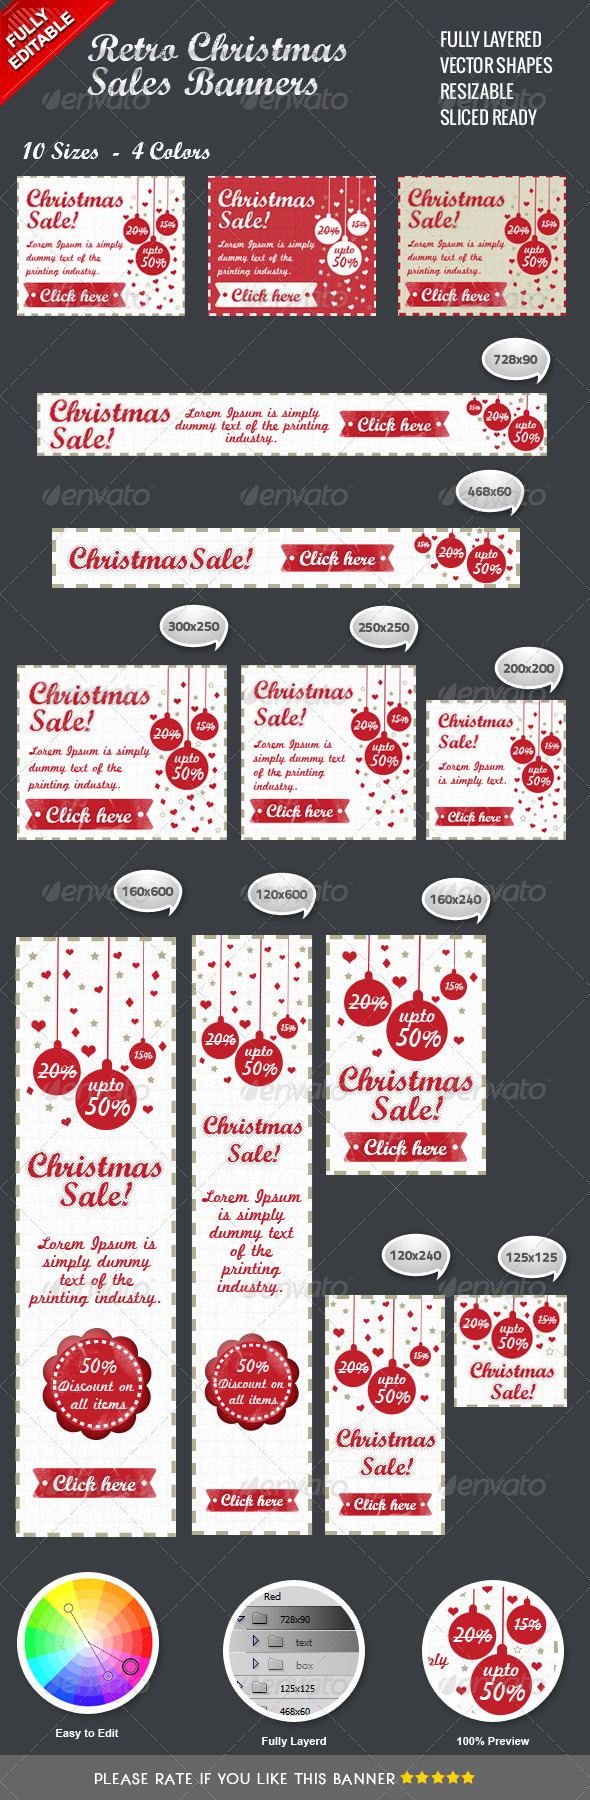 GraphicRiver Retro Christmas Sales Banners 3512374